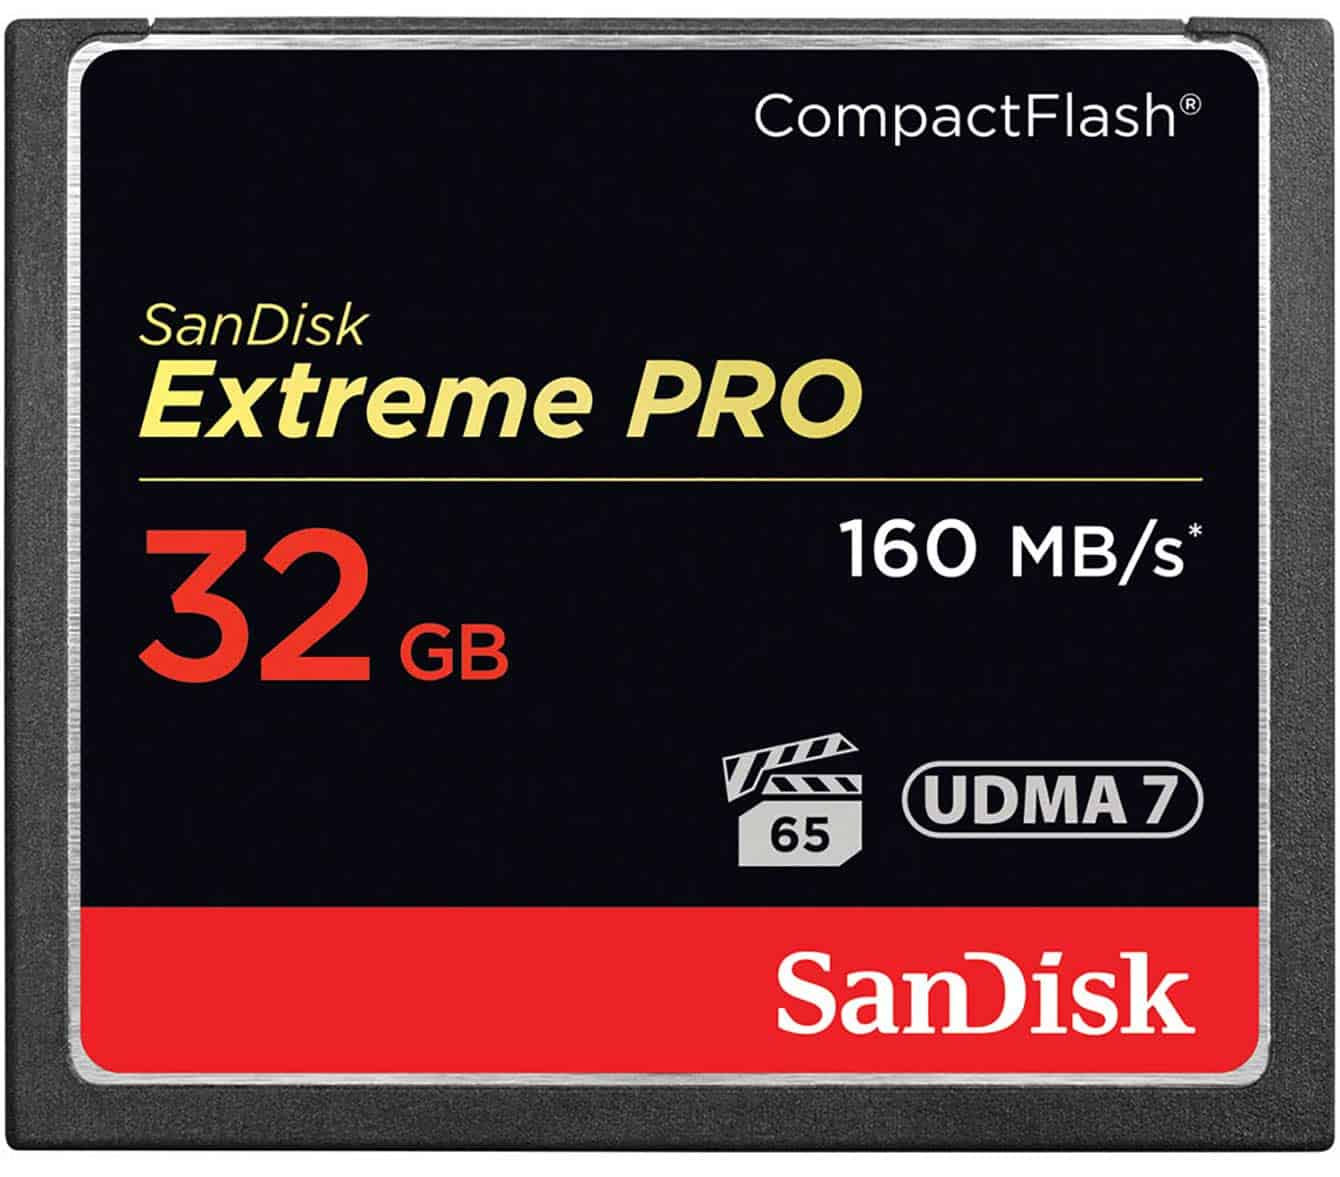 Best Compact Flash Cards (10 Powerful CF Cards Compared)